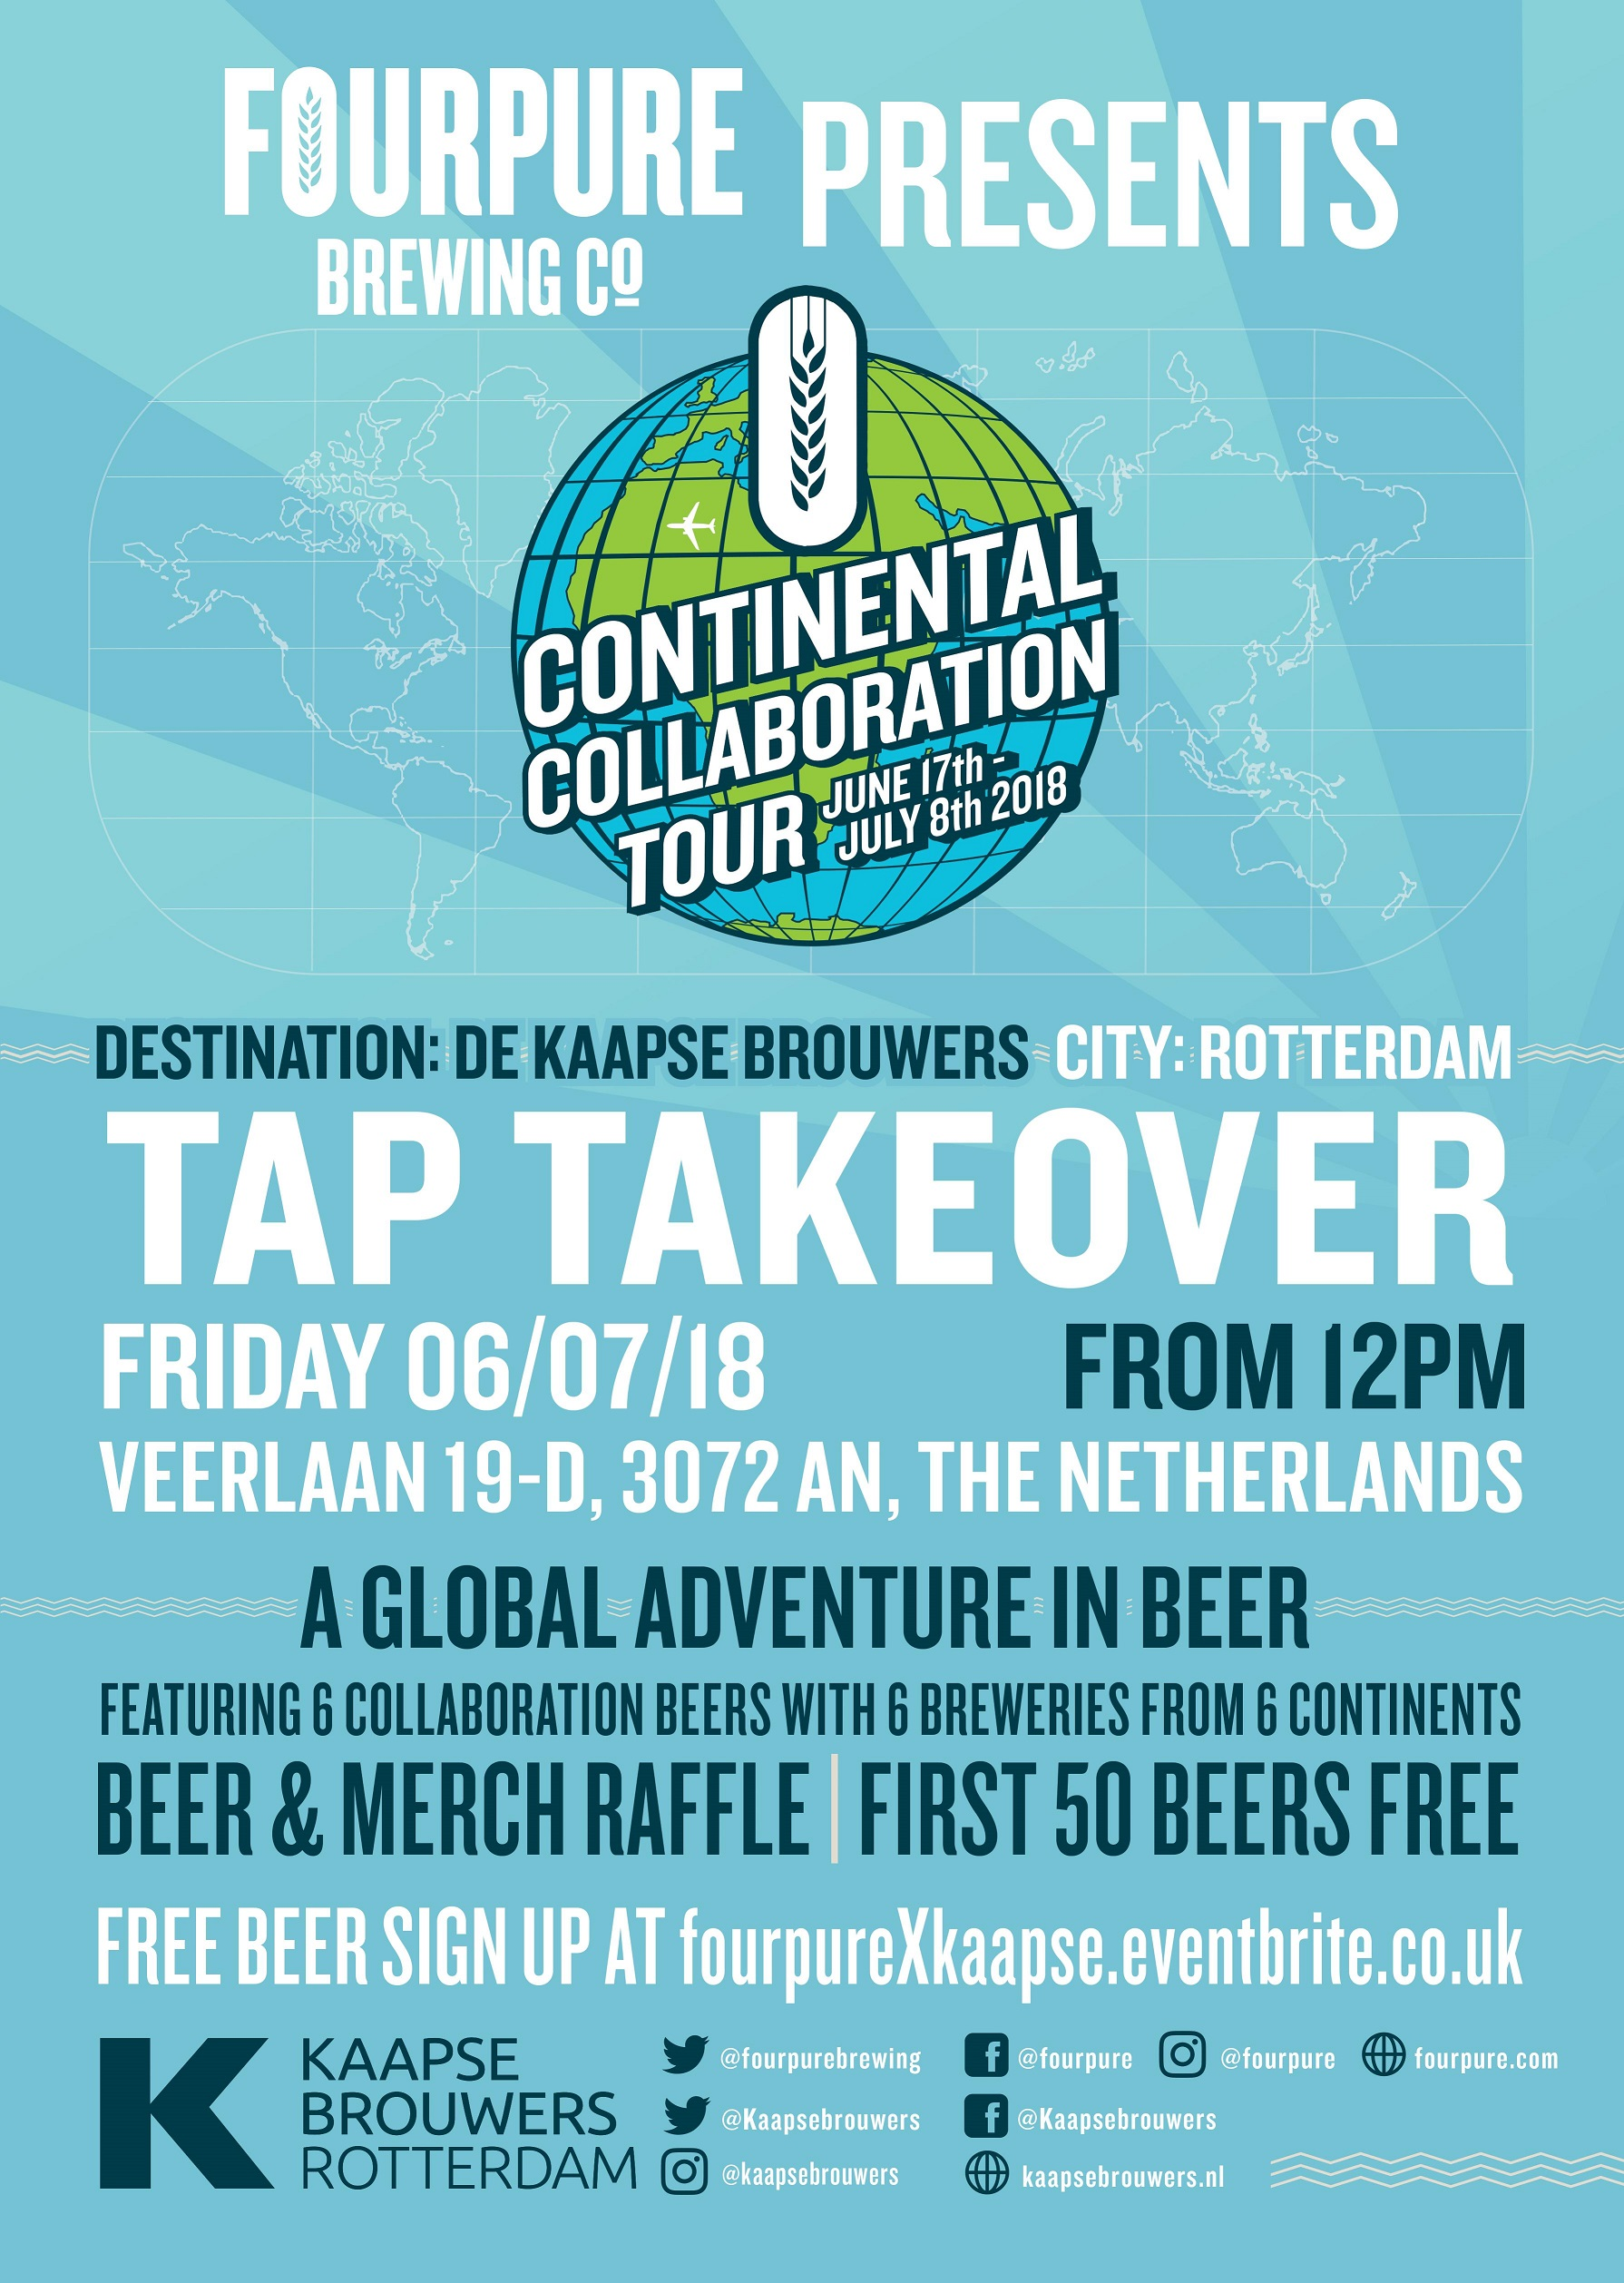 Fourpure's Continental Collaboration Tour @ De Kaapse Brouwers